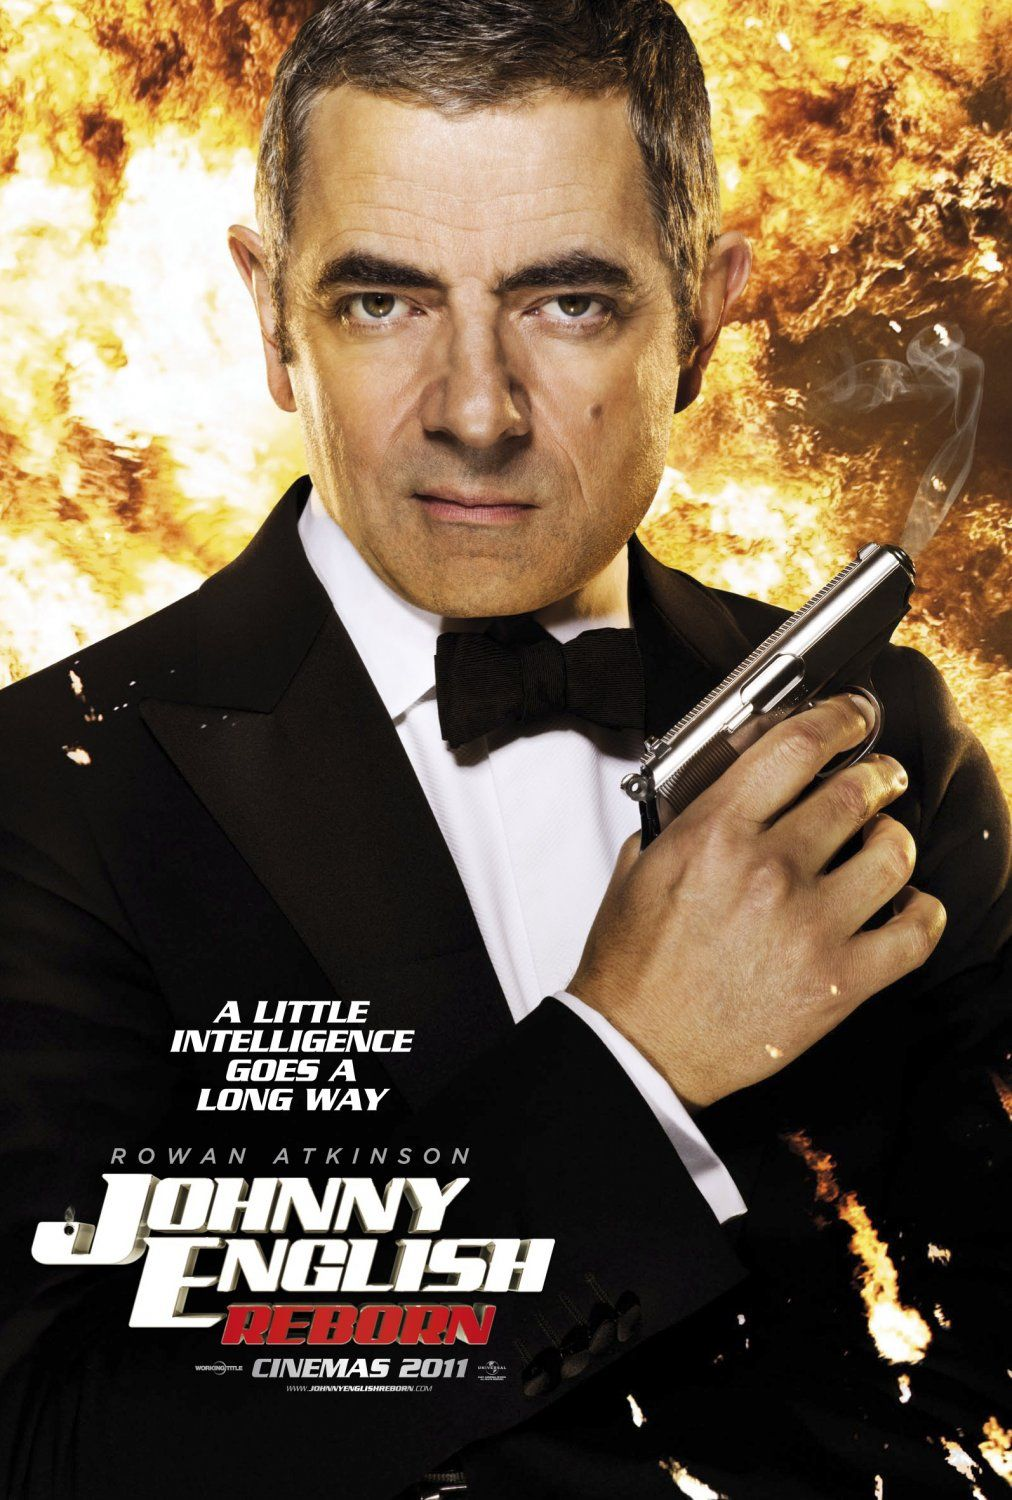 Rowan atkinson actor as johnny english and as mr bean i love him rowan atkinson actor as johnny english and as mr bean i love him solutioingenieria Choice Image